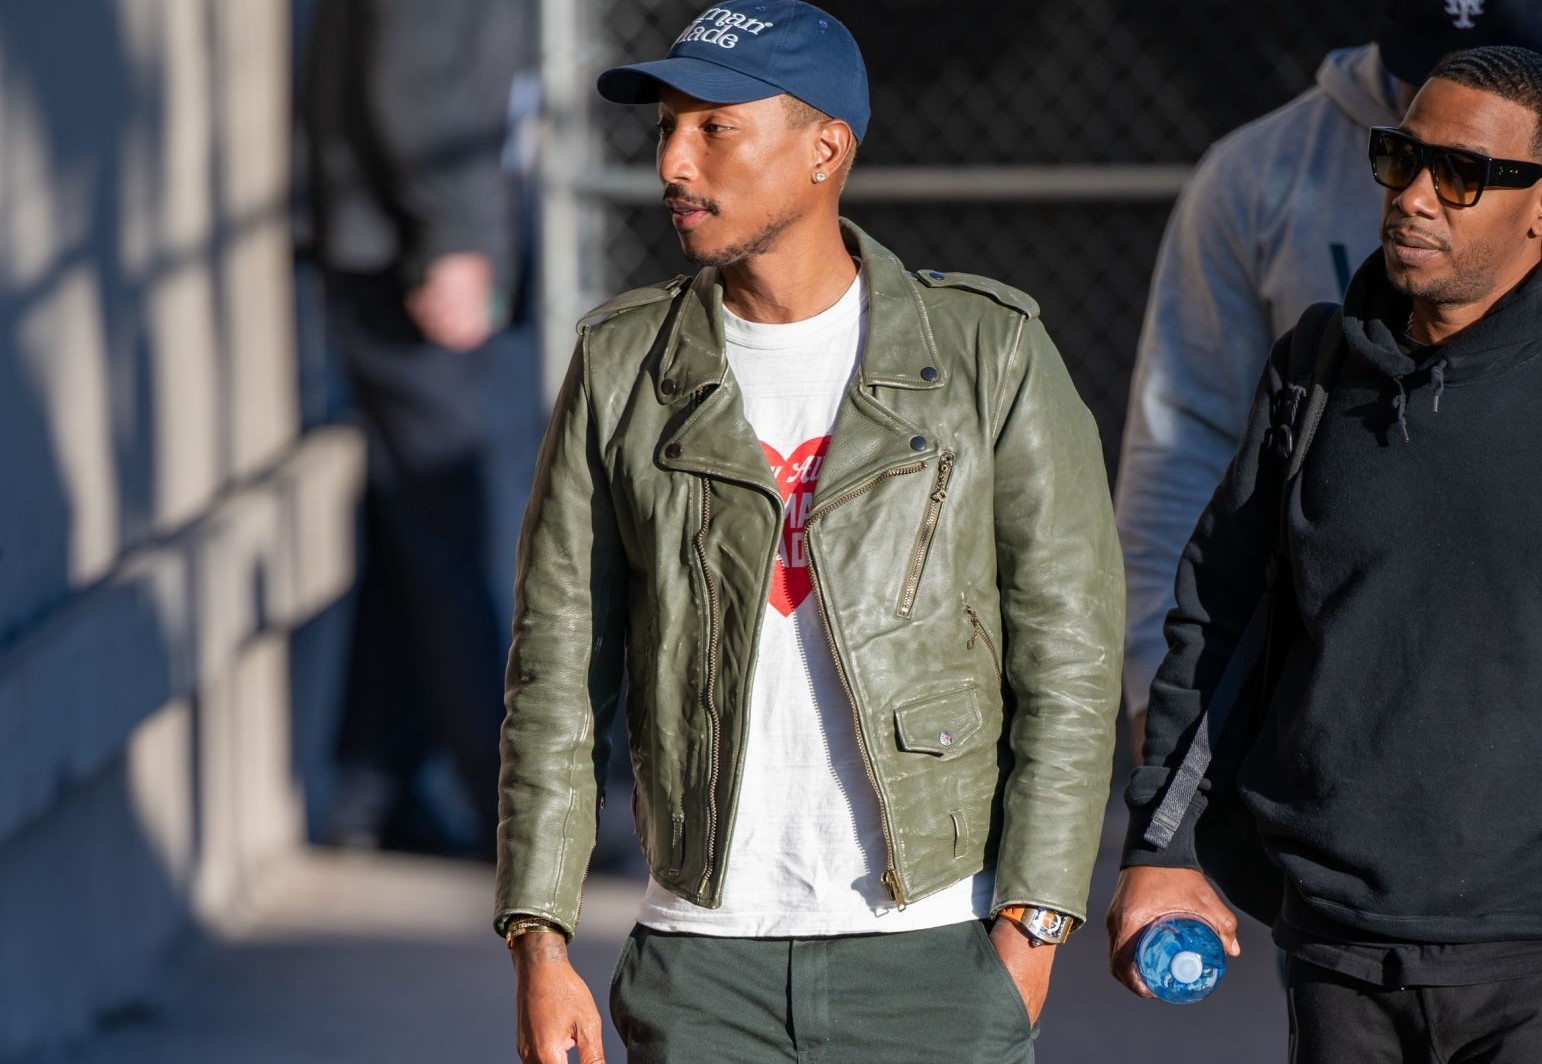 SPOTTED: Pharrell Williams Strolls Through L.A. in Human Made & CPFM